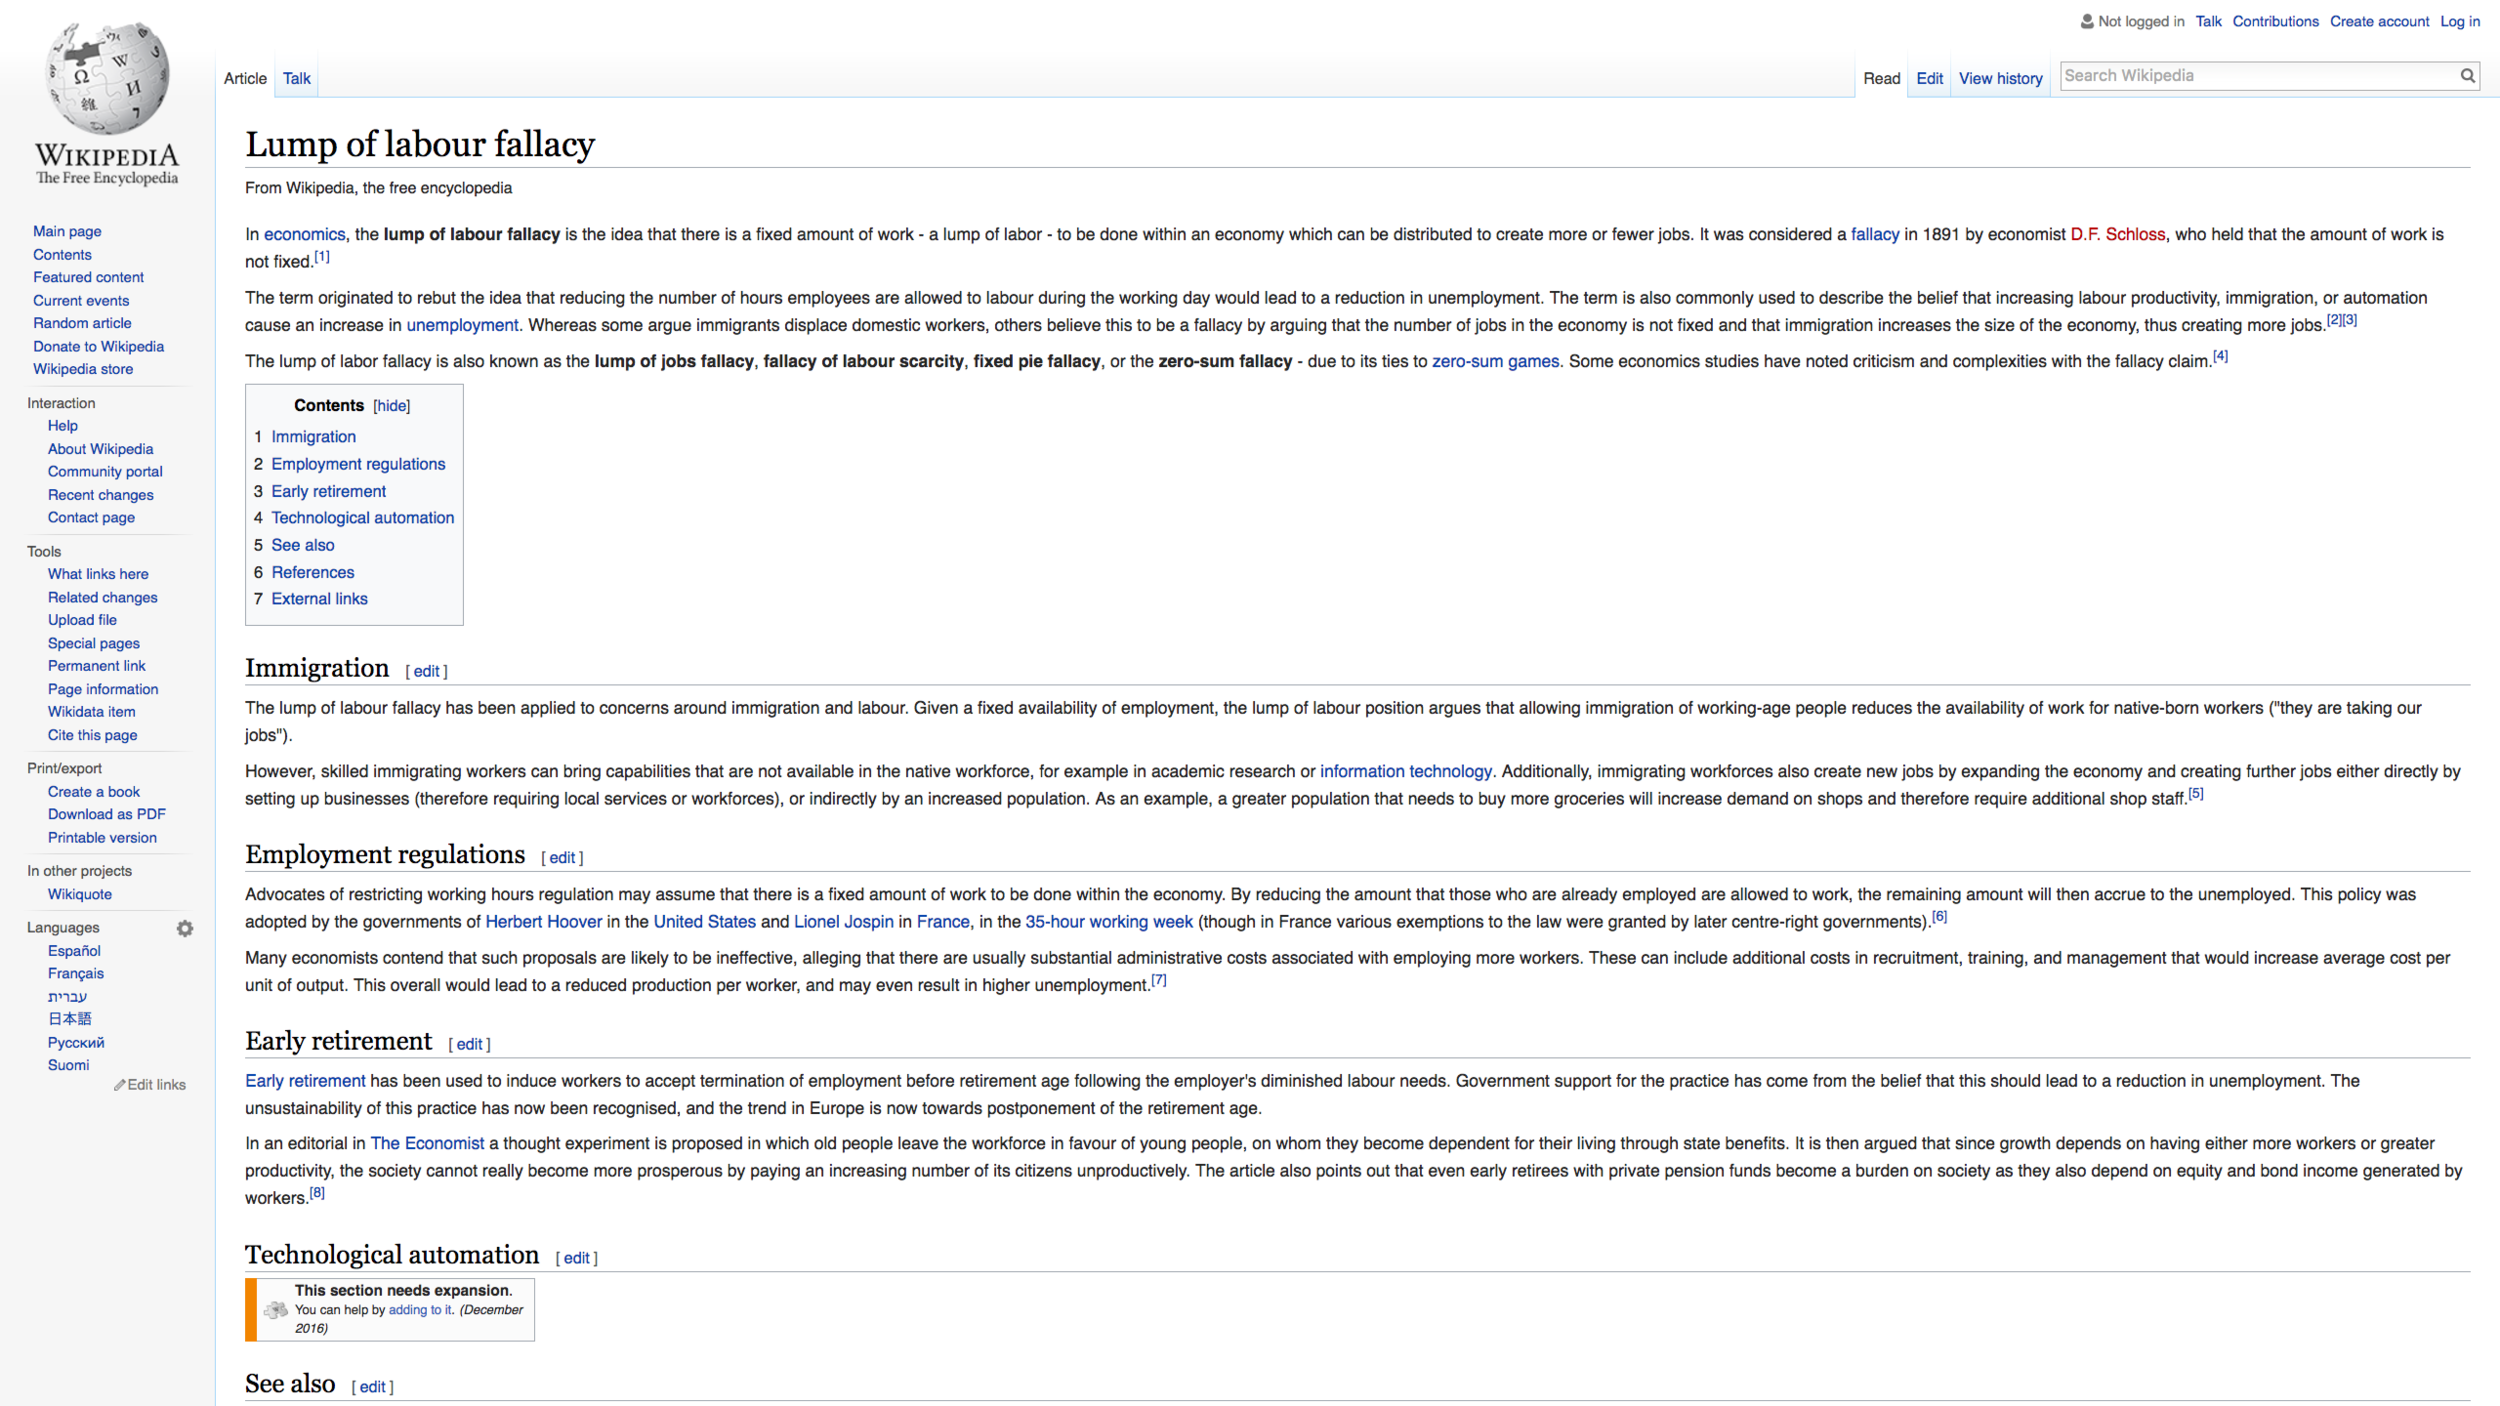 Link to the Wikipedia article pictured above